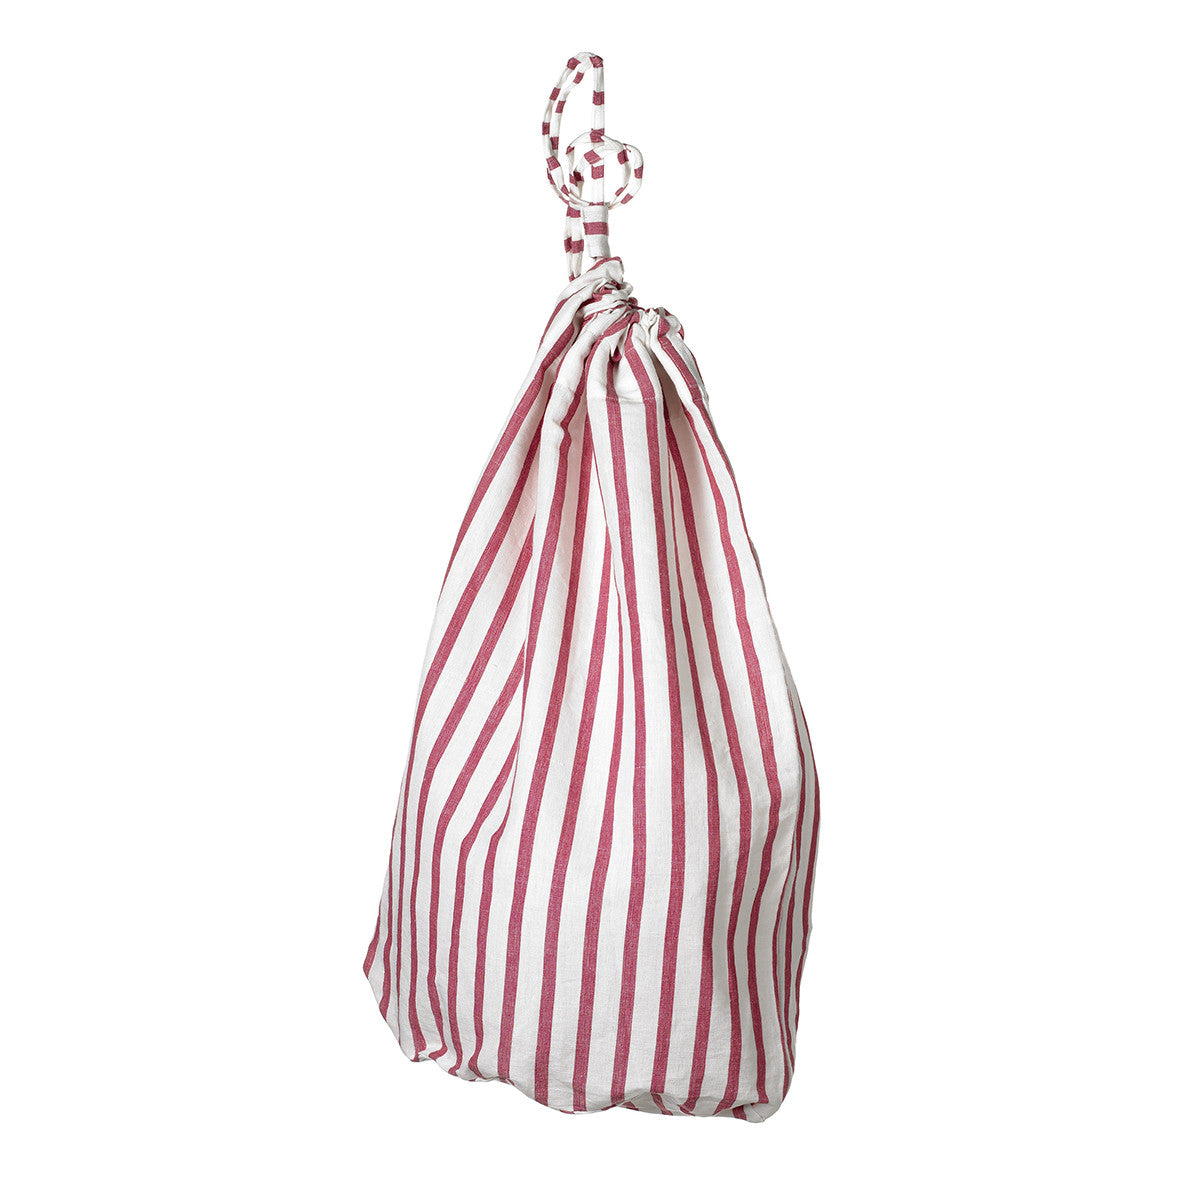 Autumn Ticking Stripe Drawstring Cotton Linen Laundry and Storage Bag in Heather Pink ships from Canada (USA)